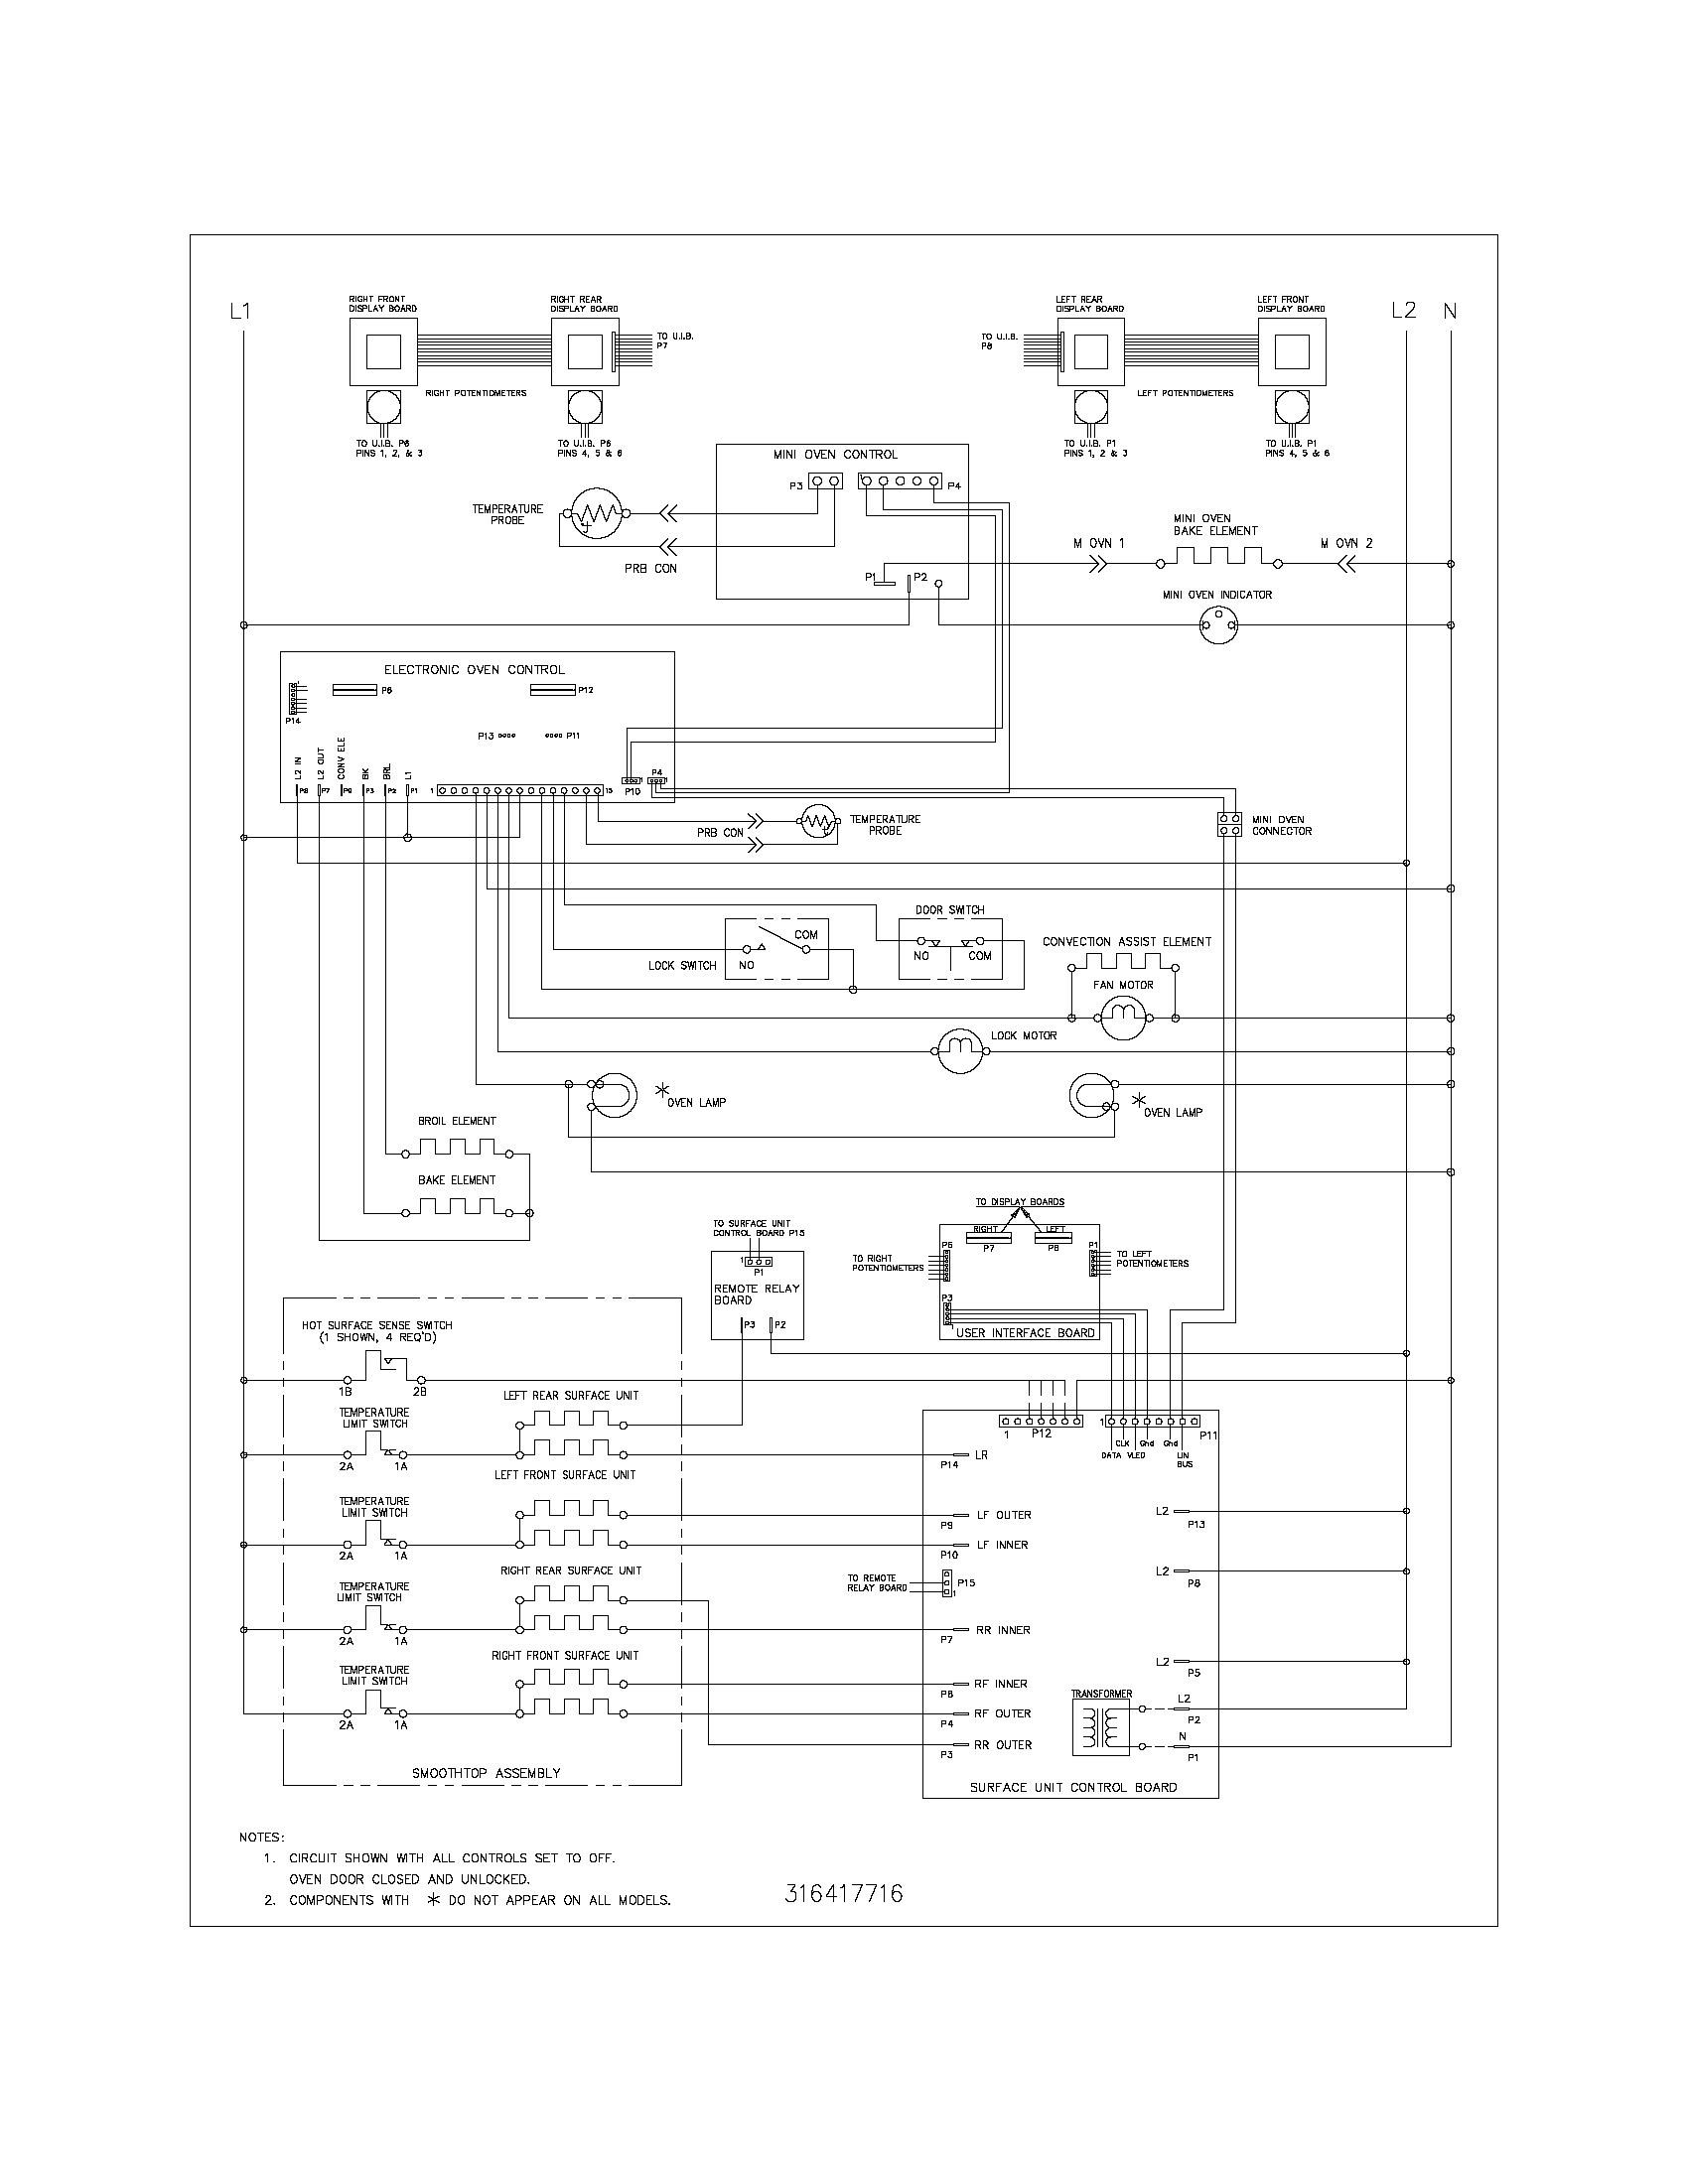 wiring schematic parts odes wiring diagram e z go wiring diagram \u2022 wiring diagrams j wiring diagram for electric fireplace at webbmarketing.co